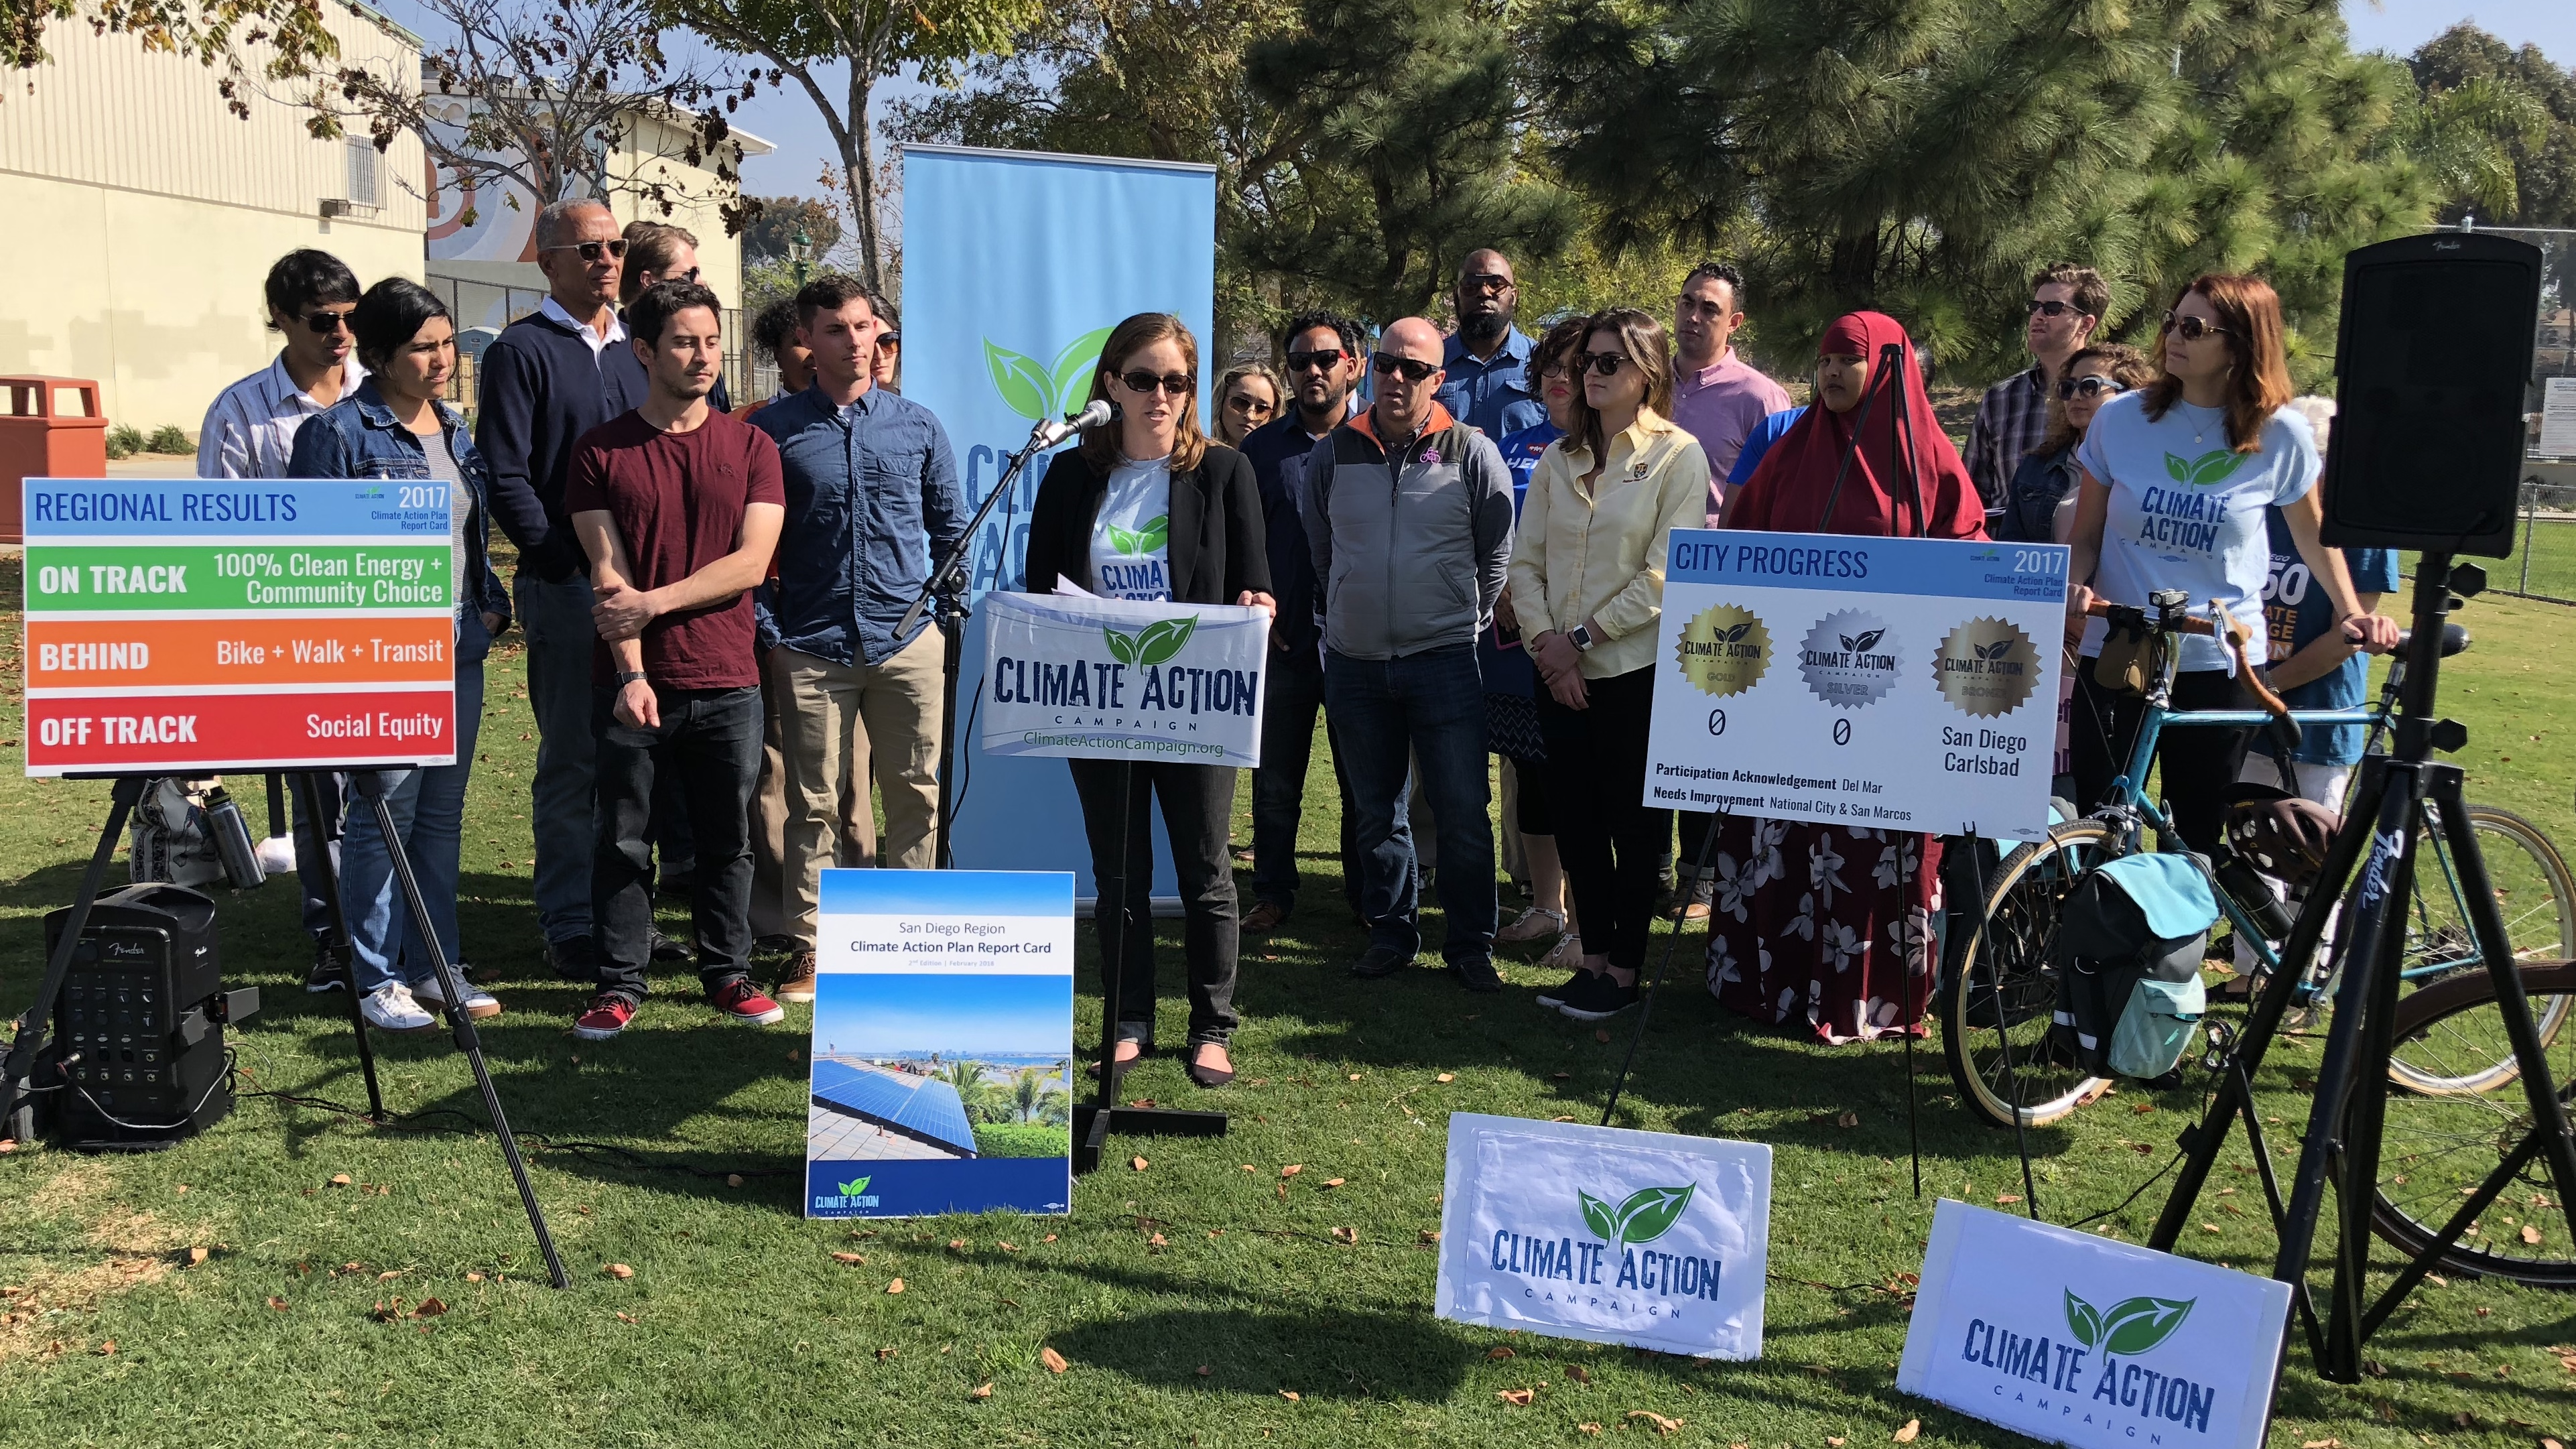 Making Equity A Central Part Of 'San Diego Green New Deal'